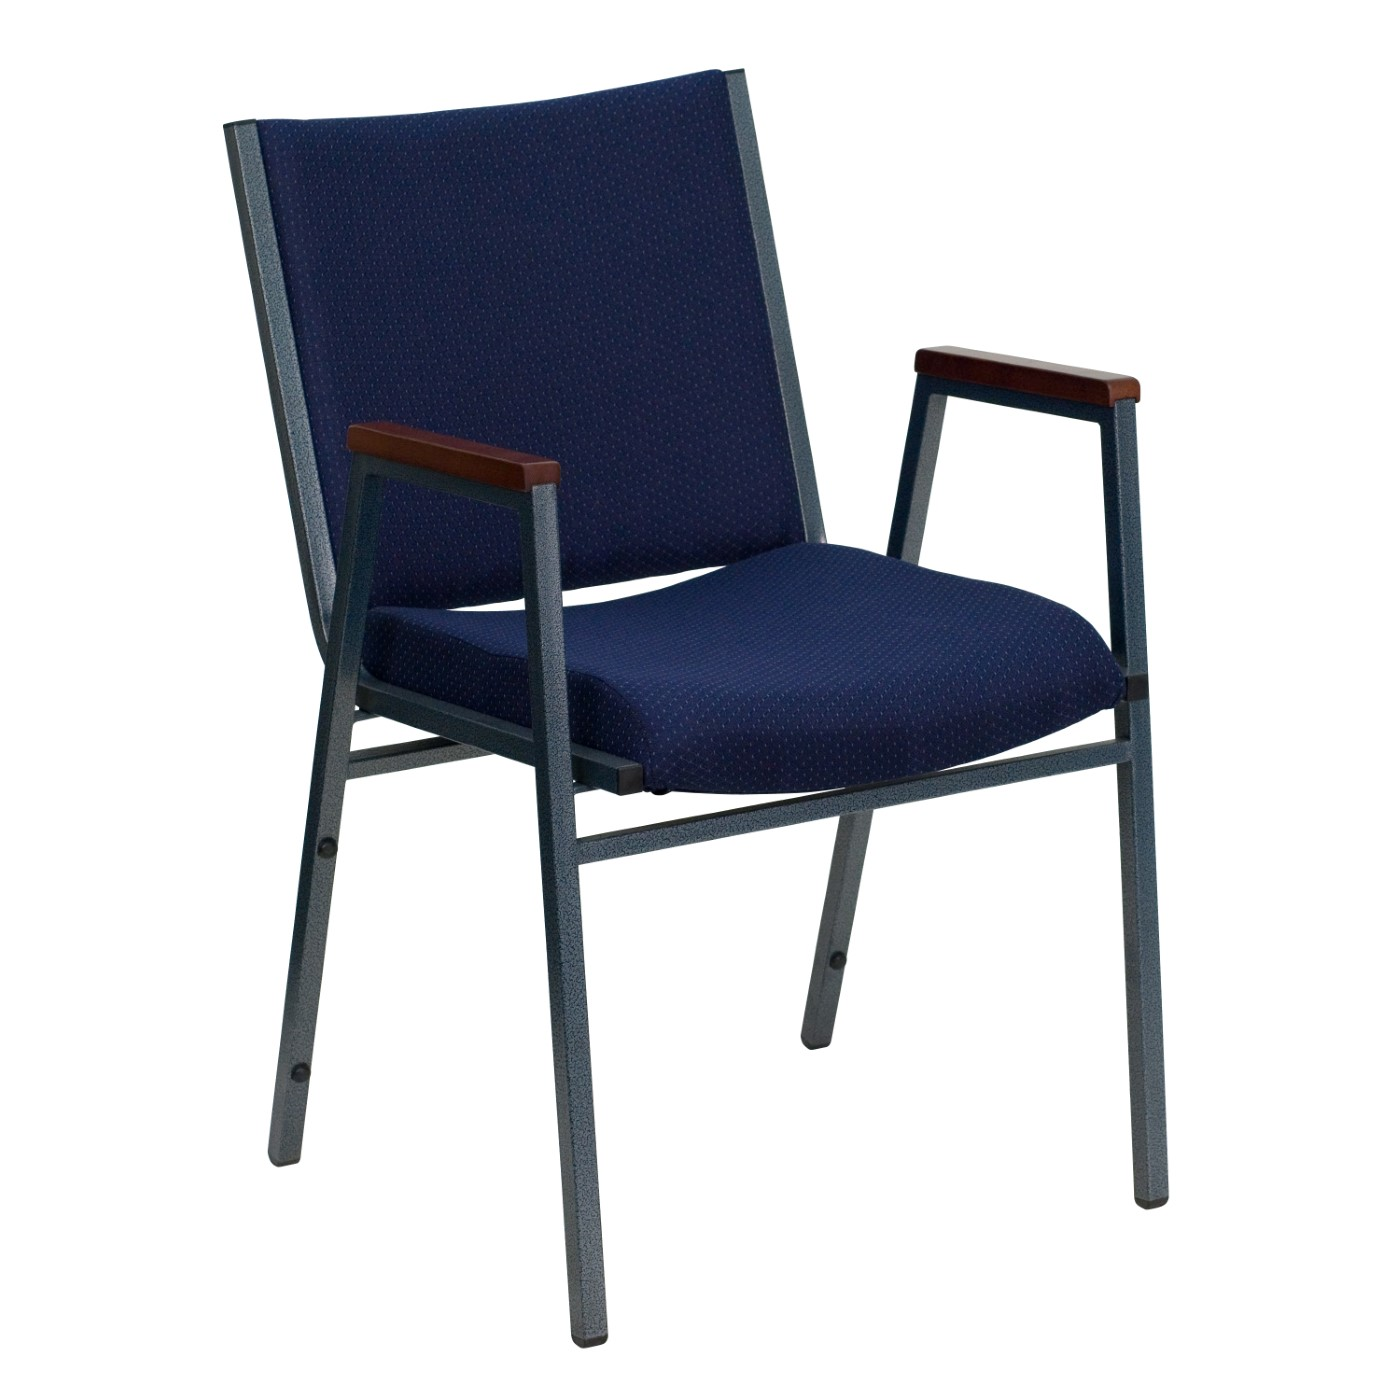 TOUGH ENOUGH Series Heavy Duty Navy Blue Dot Fabric Stack Chair with Arms